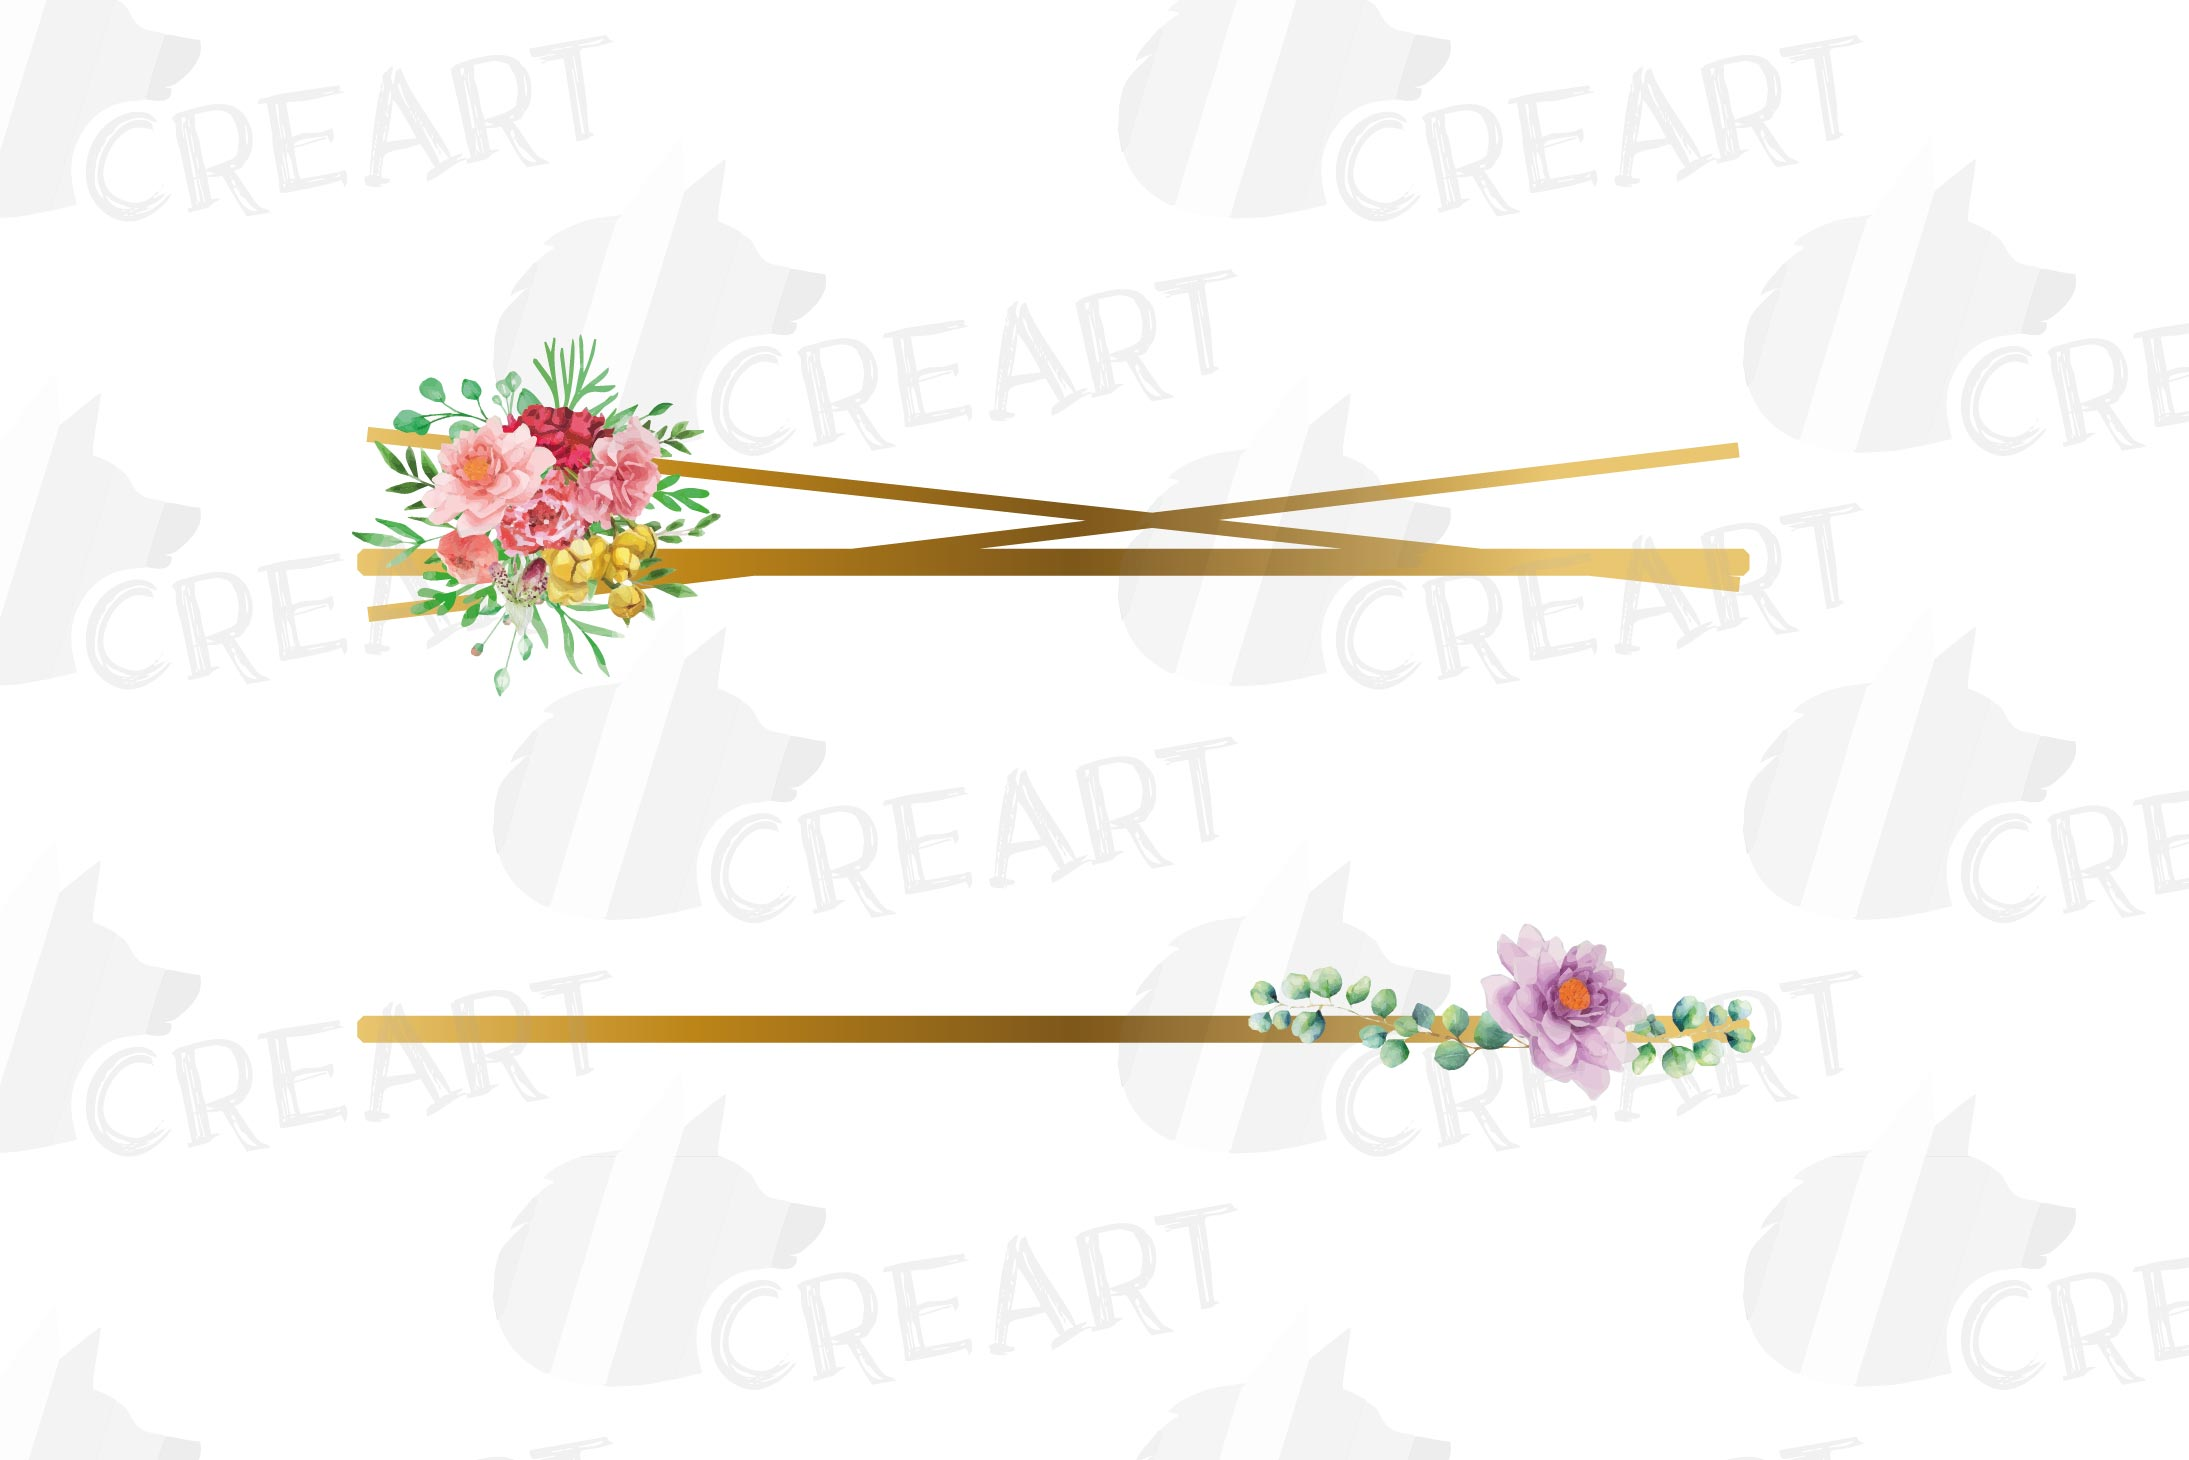 Watercolor floral golden frames and borders clip art pack example image 4